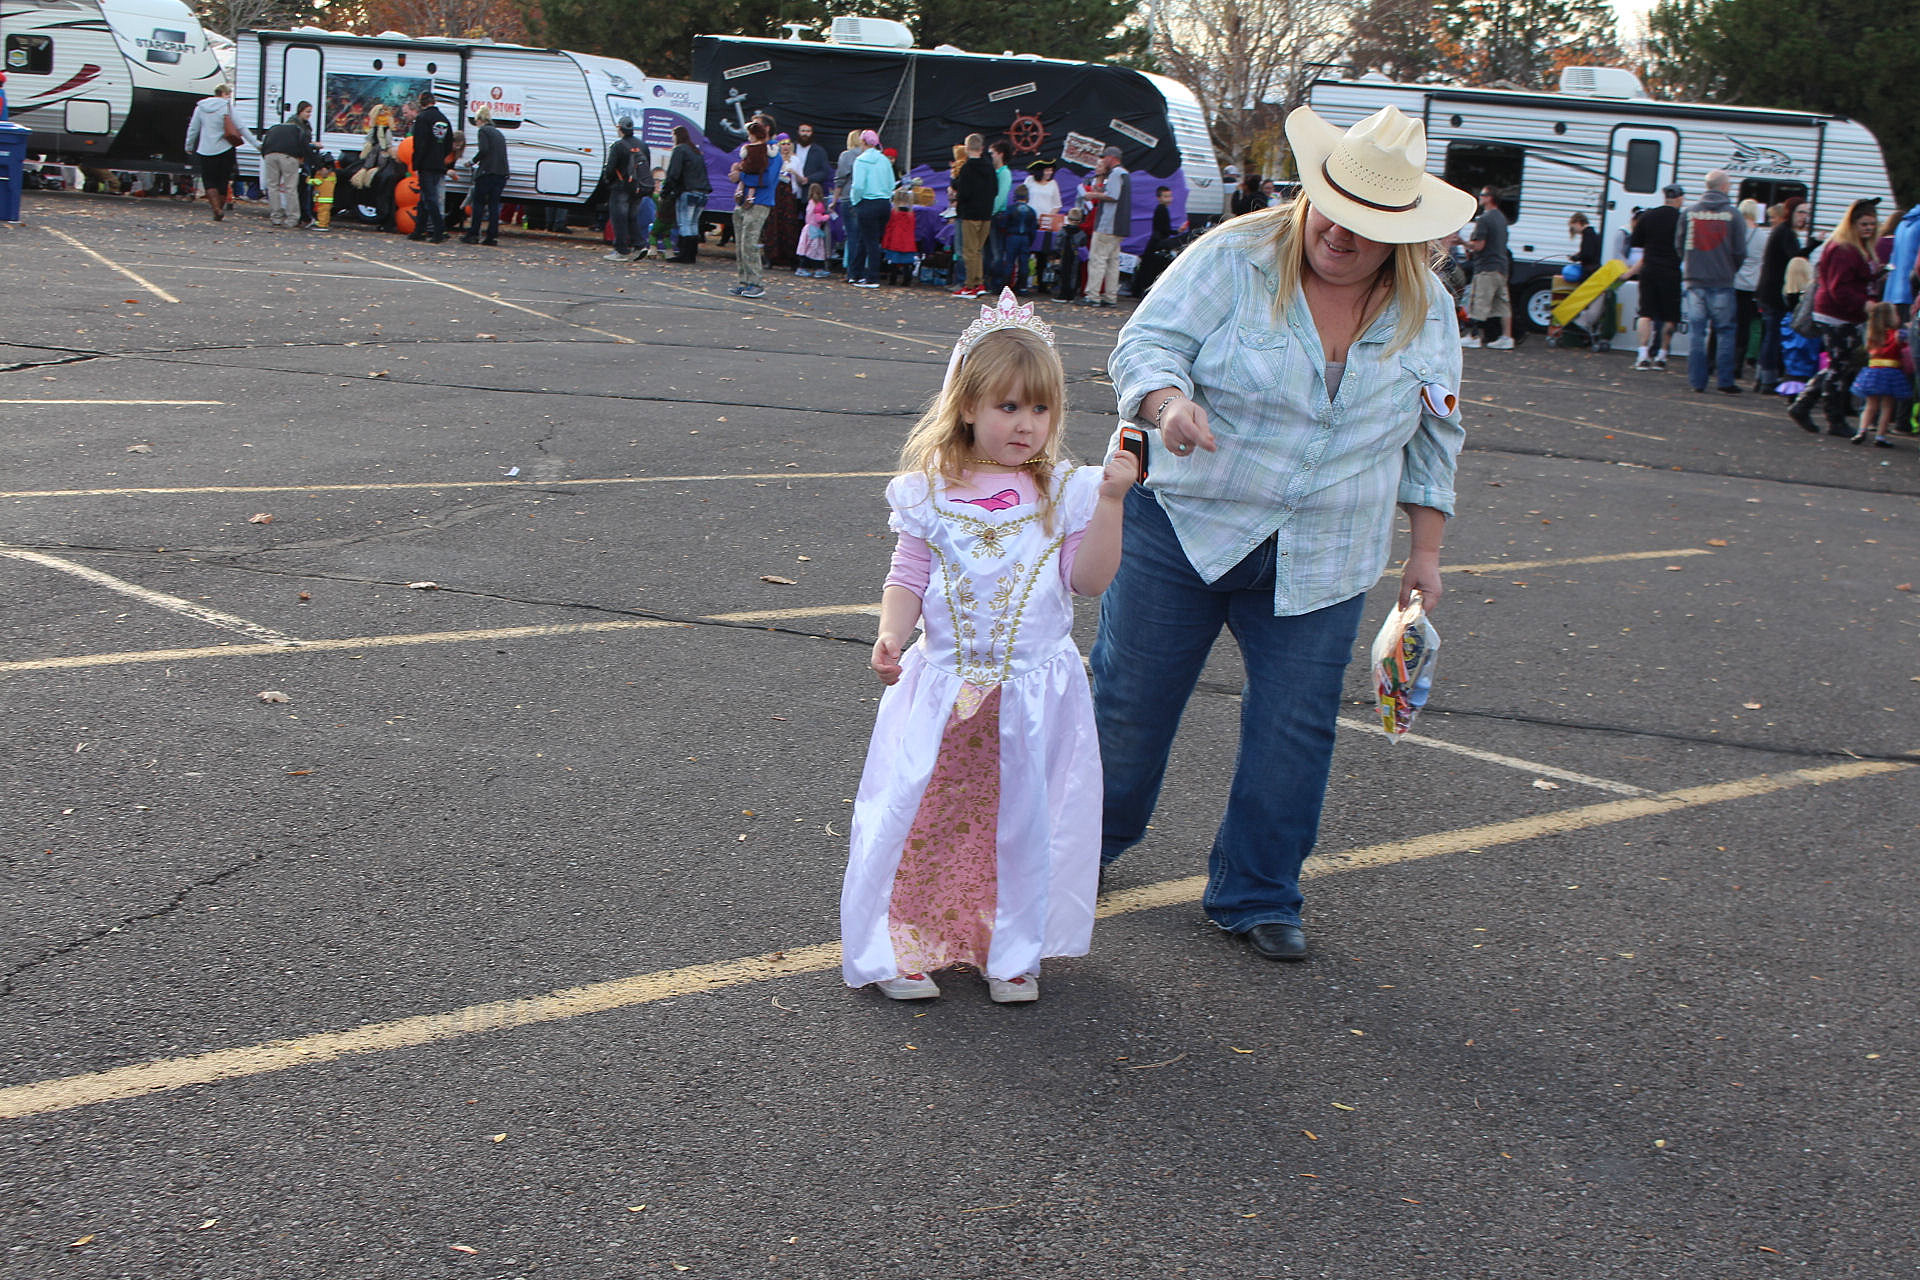 Halloween Trick Or Treat Times 2020 Chubbuck Halloween Trick or Treat Events in Southern Idaho